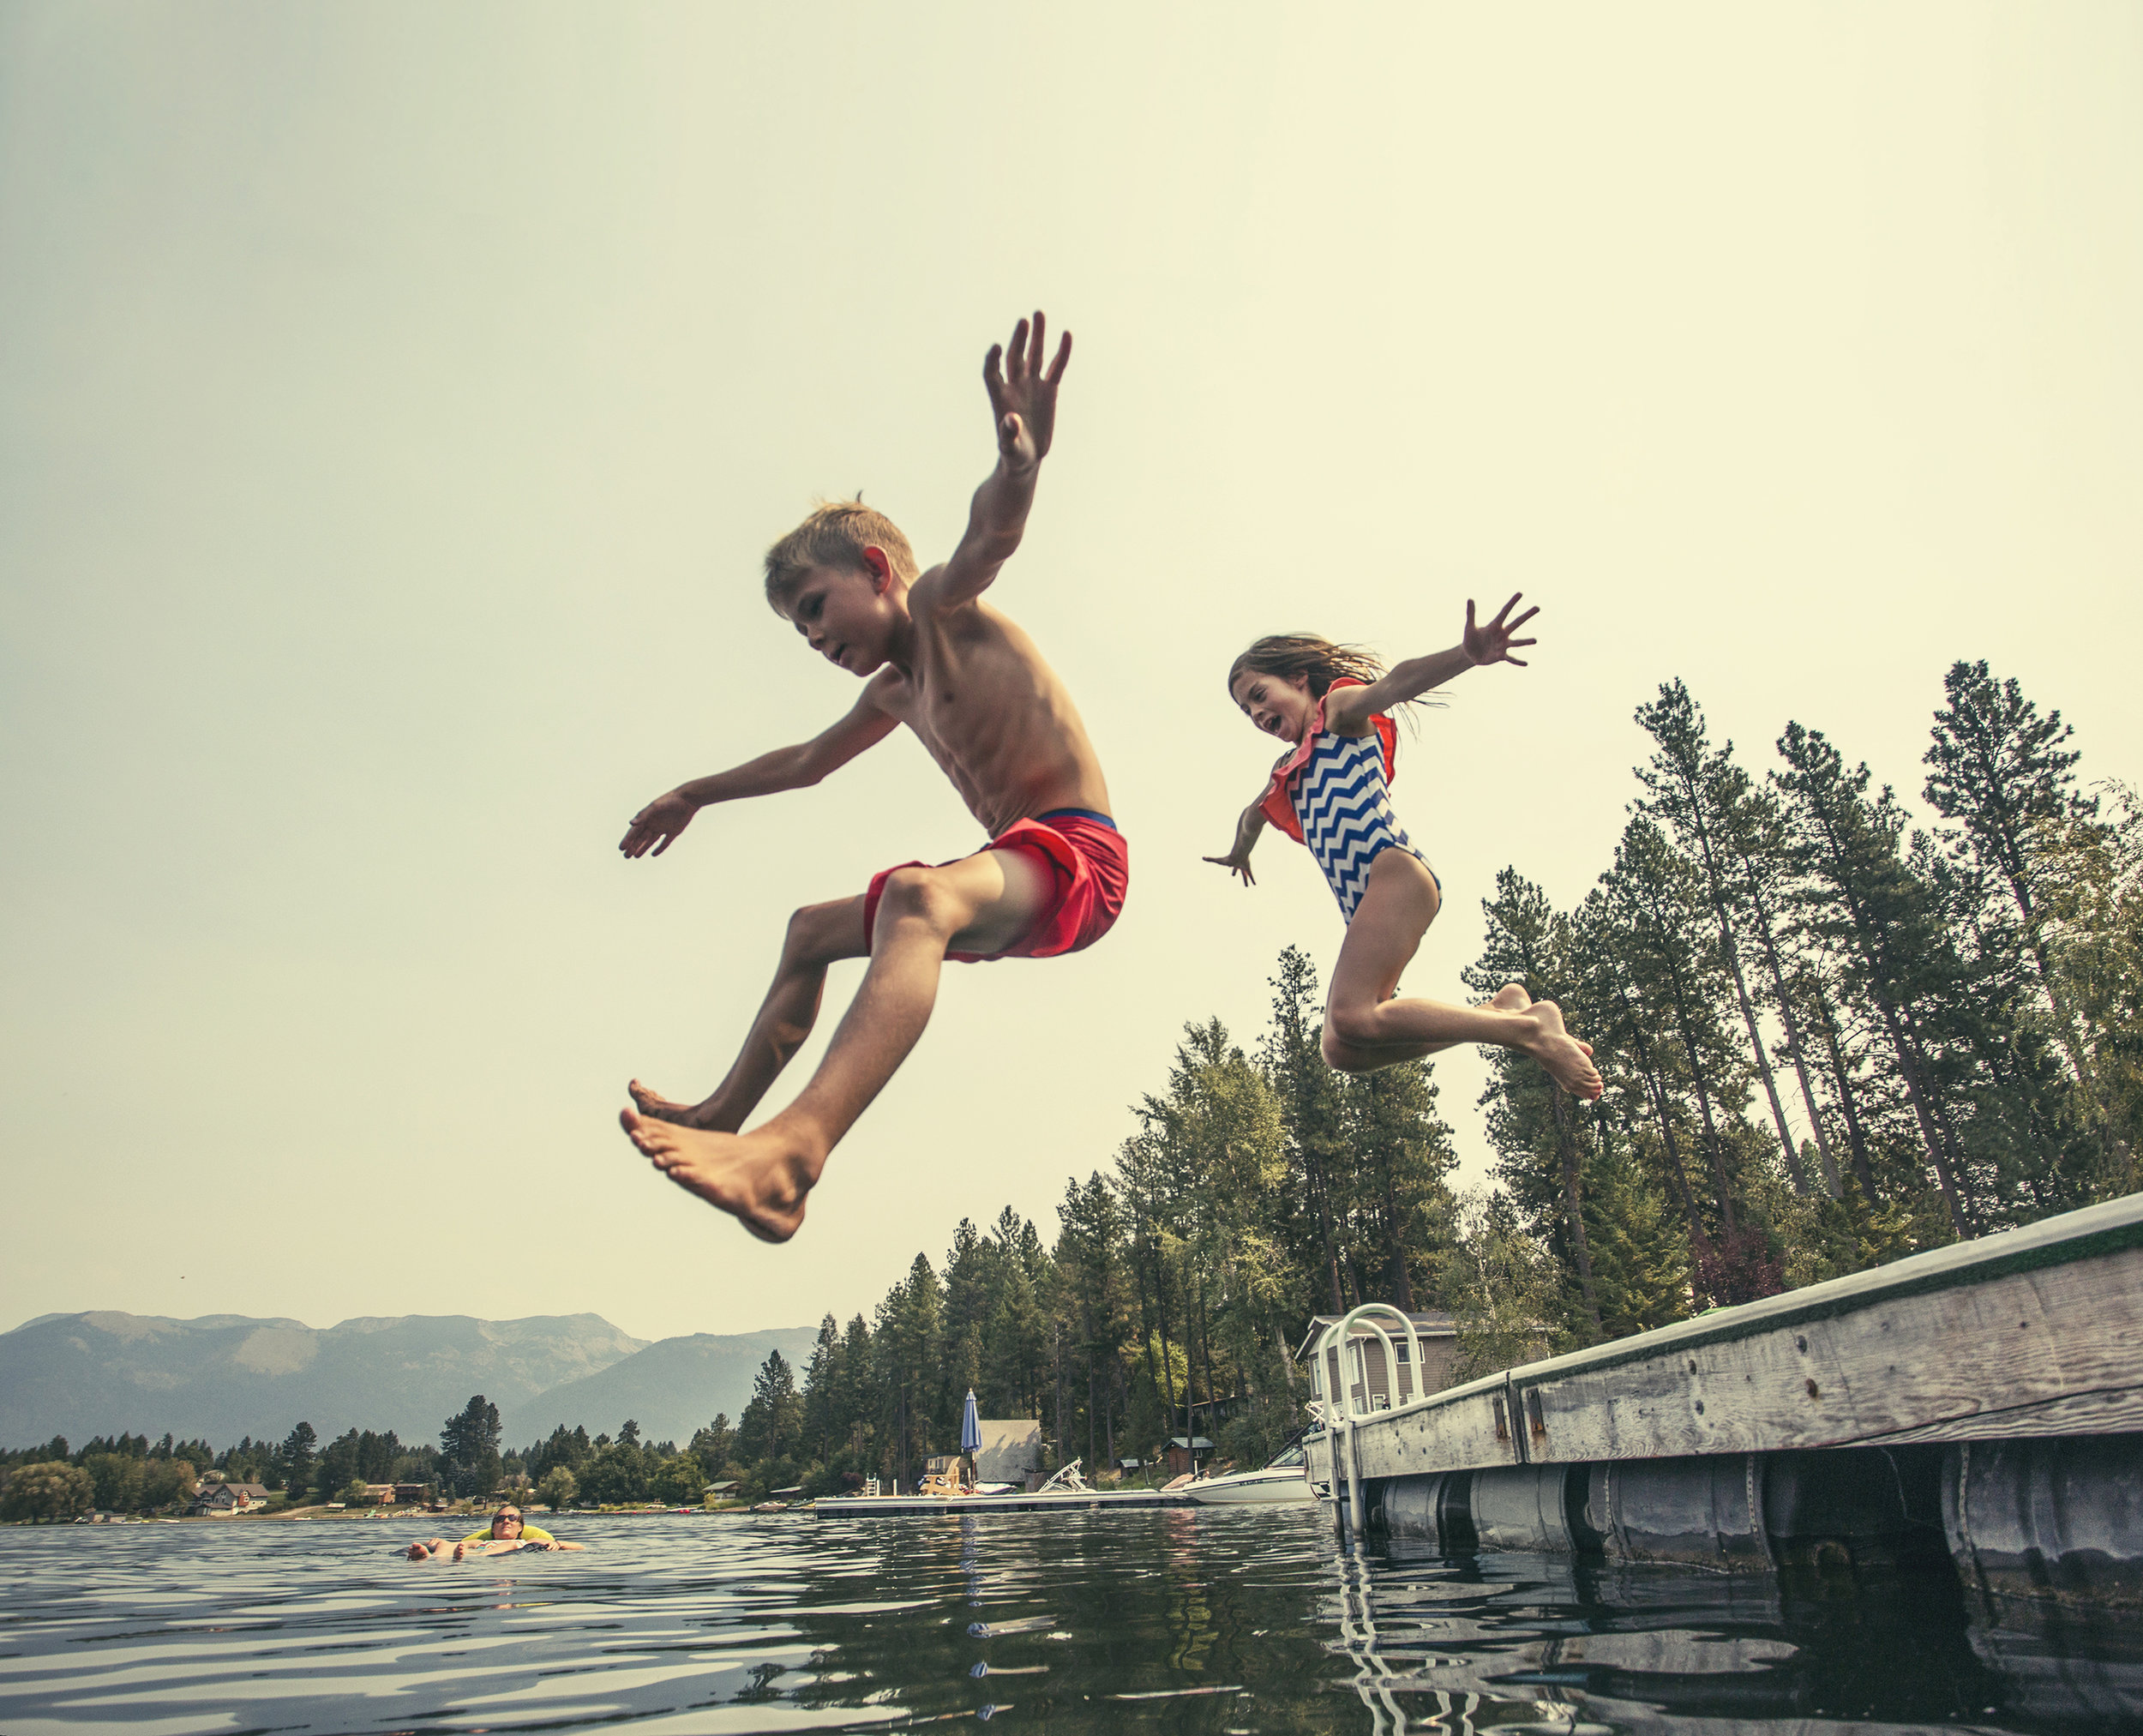 kids-jumping-lake.jpg